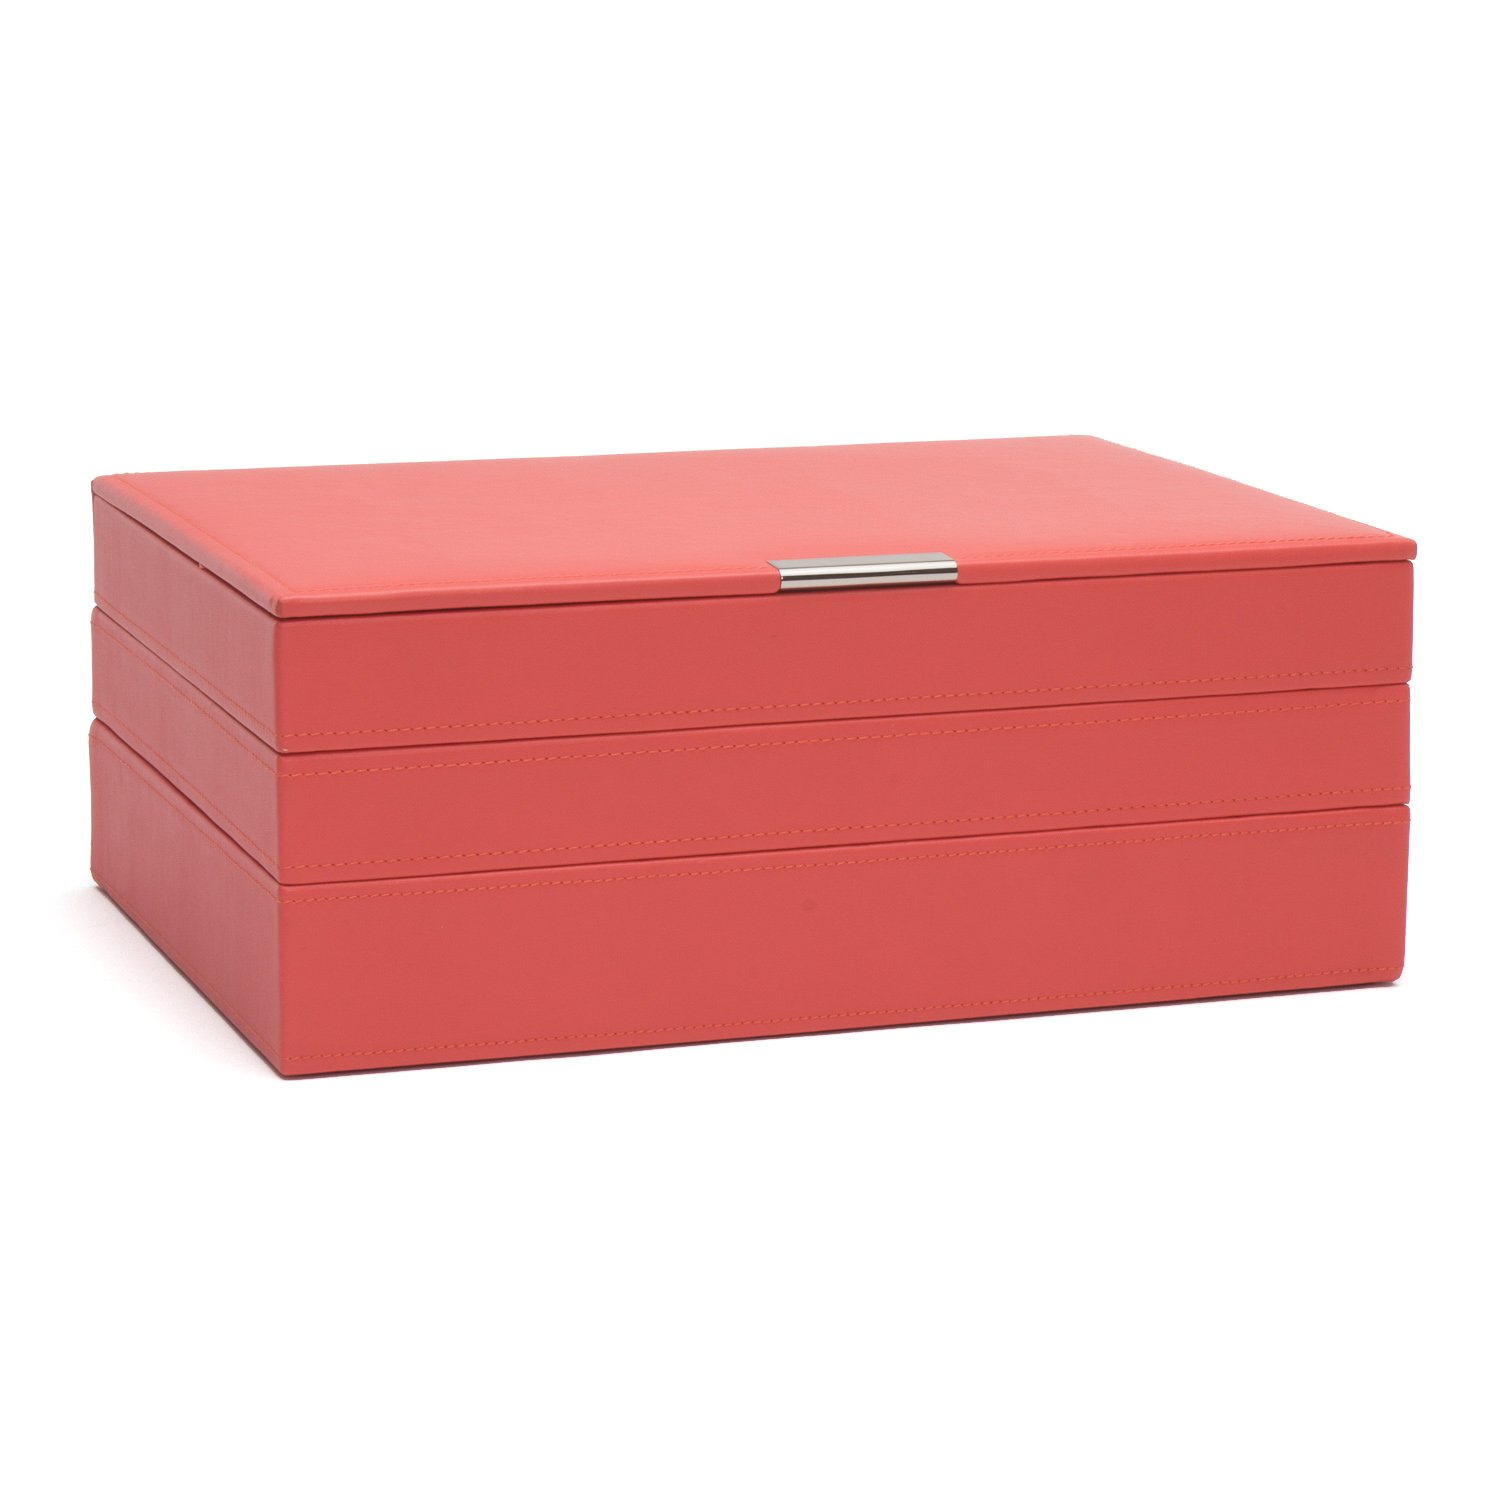 WOLF 300642 Large Stackable Tray Set, Coral